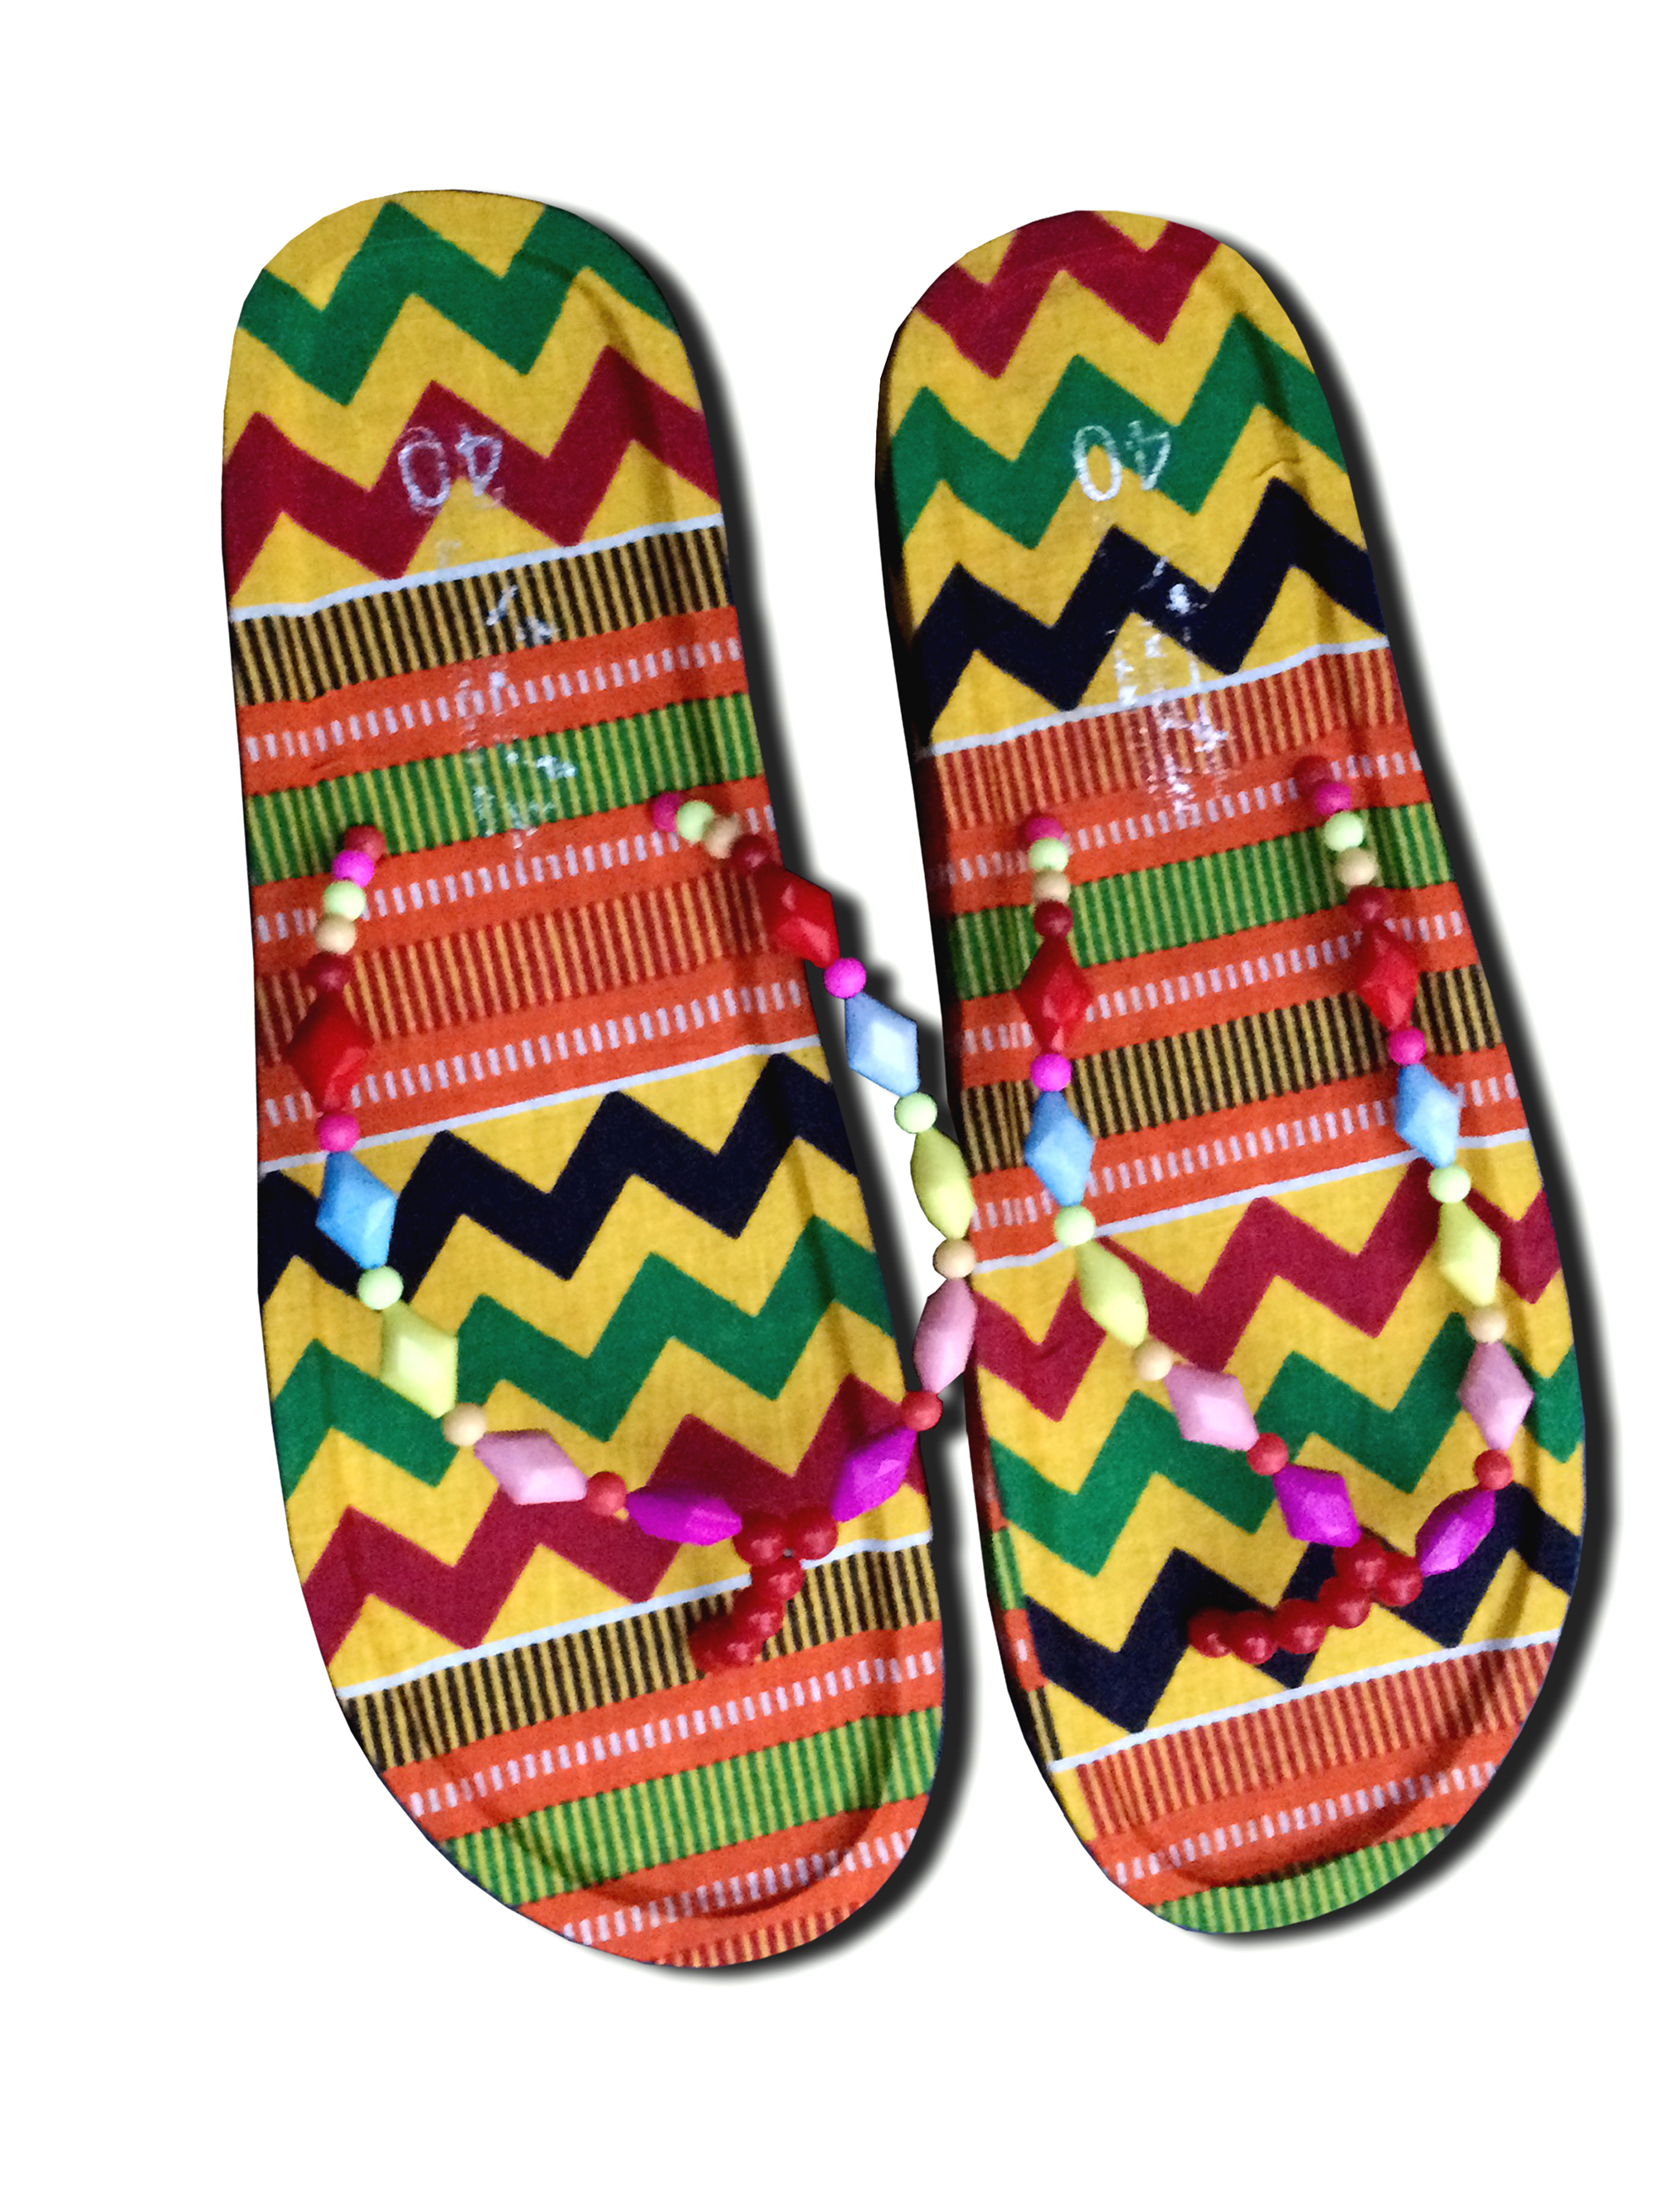 8c4f33dca2b40 Kente Flip Flops Traditional Thong slippers Women's Shoes Handmade Sandals  from Ramsjay Designs